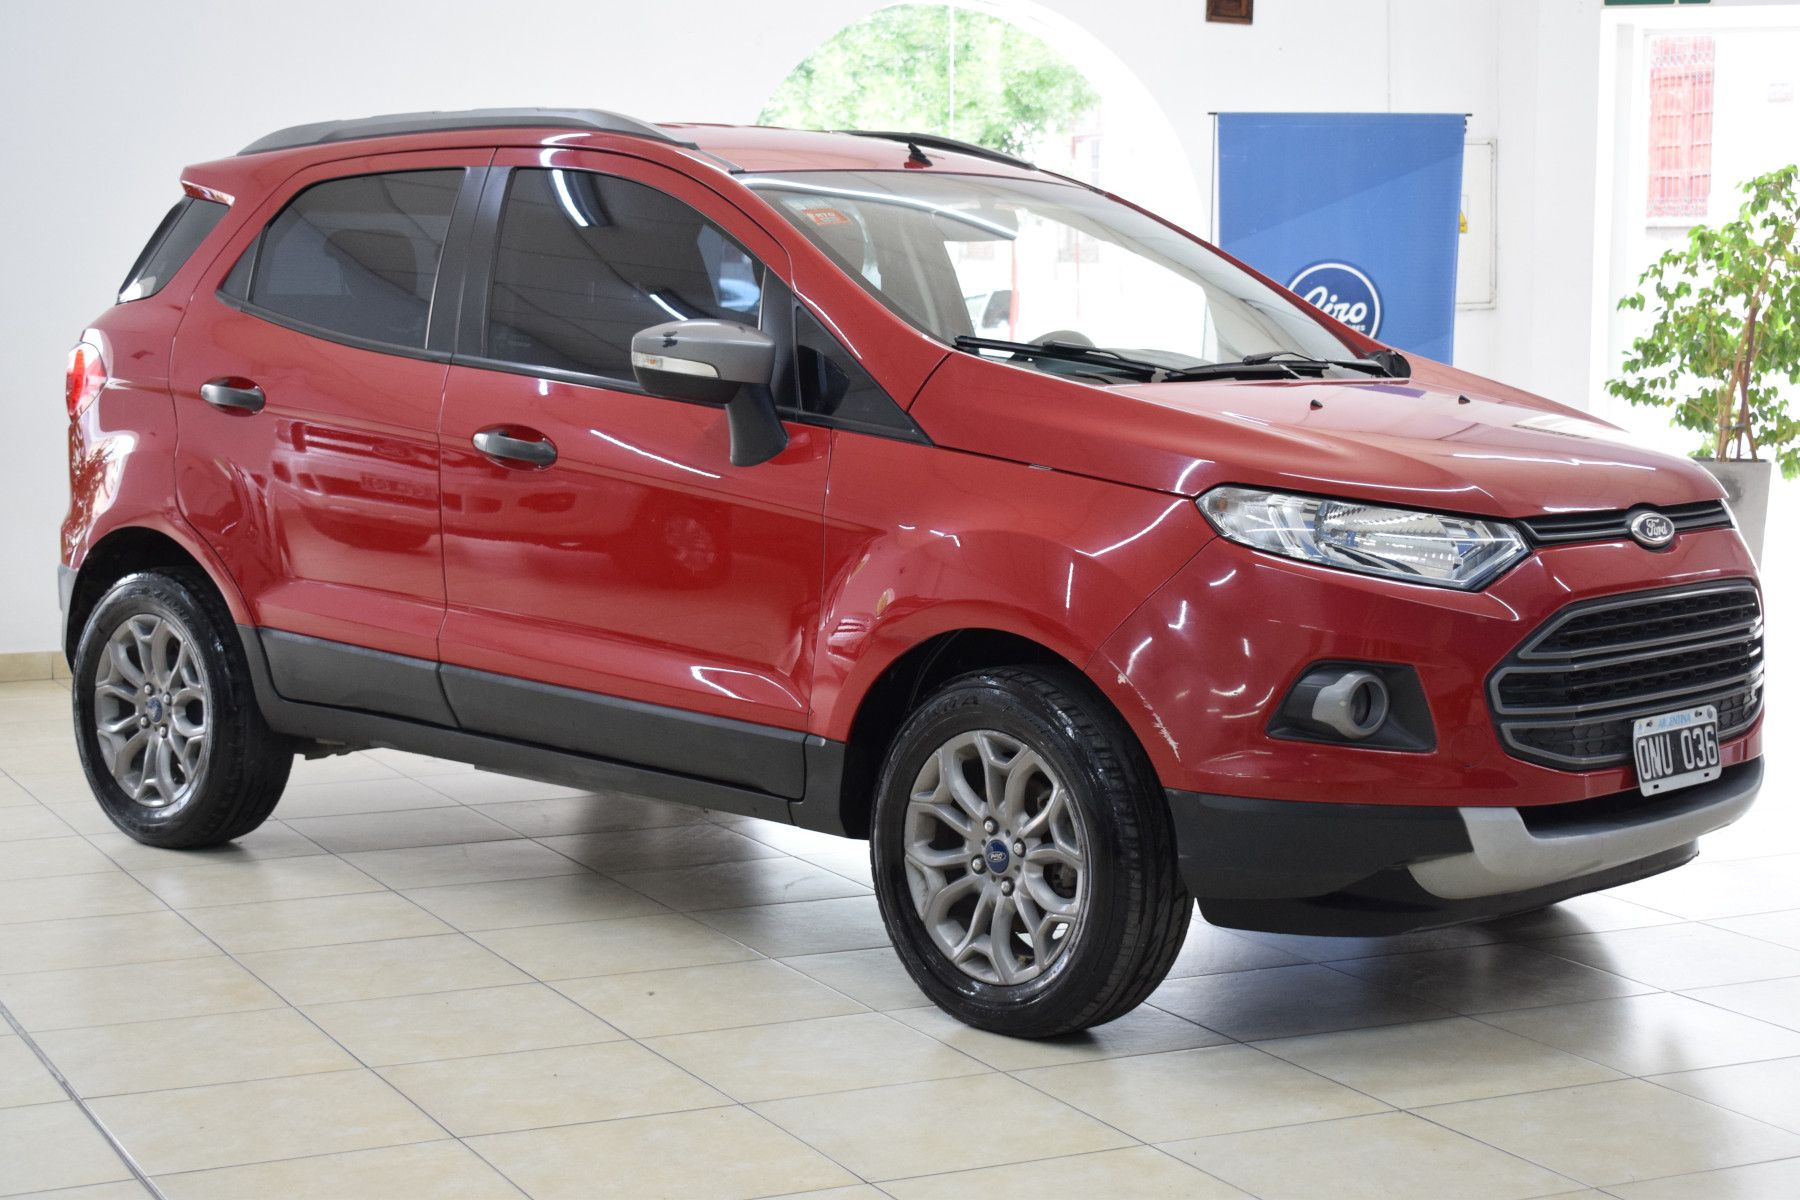 Ford ECO SPORT 1.6 FREESTYLE       L 13  3